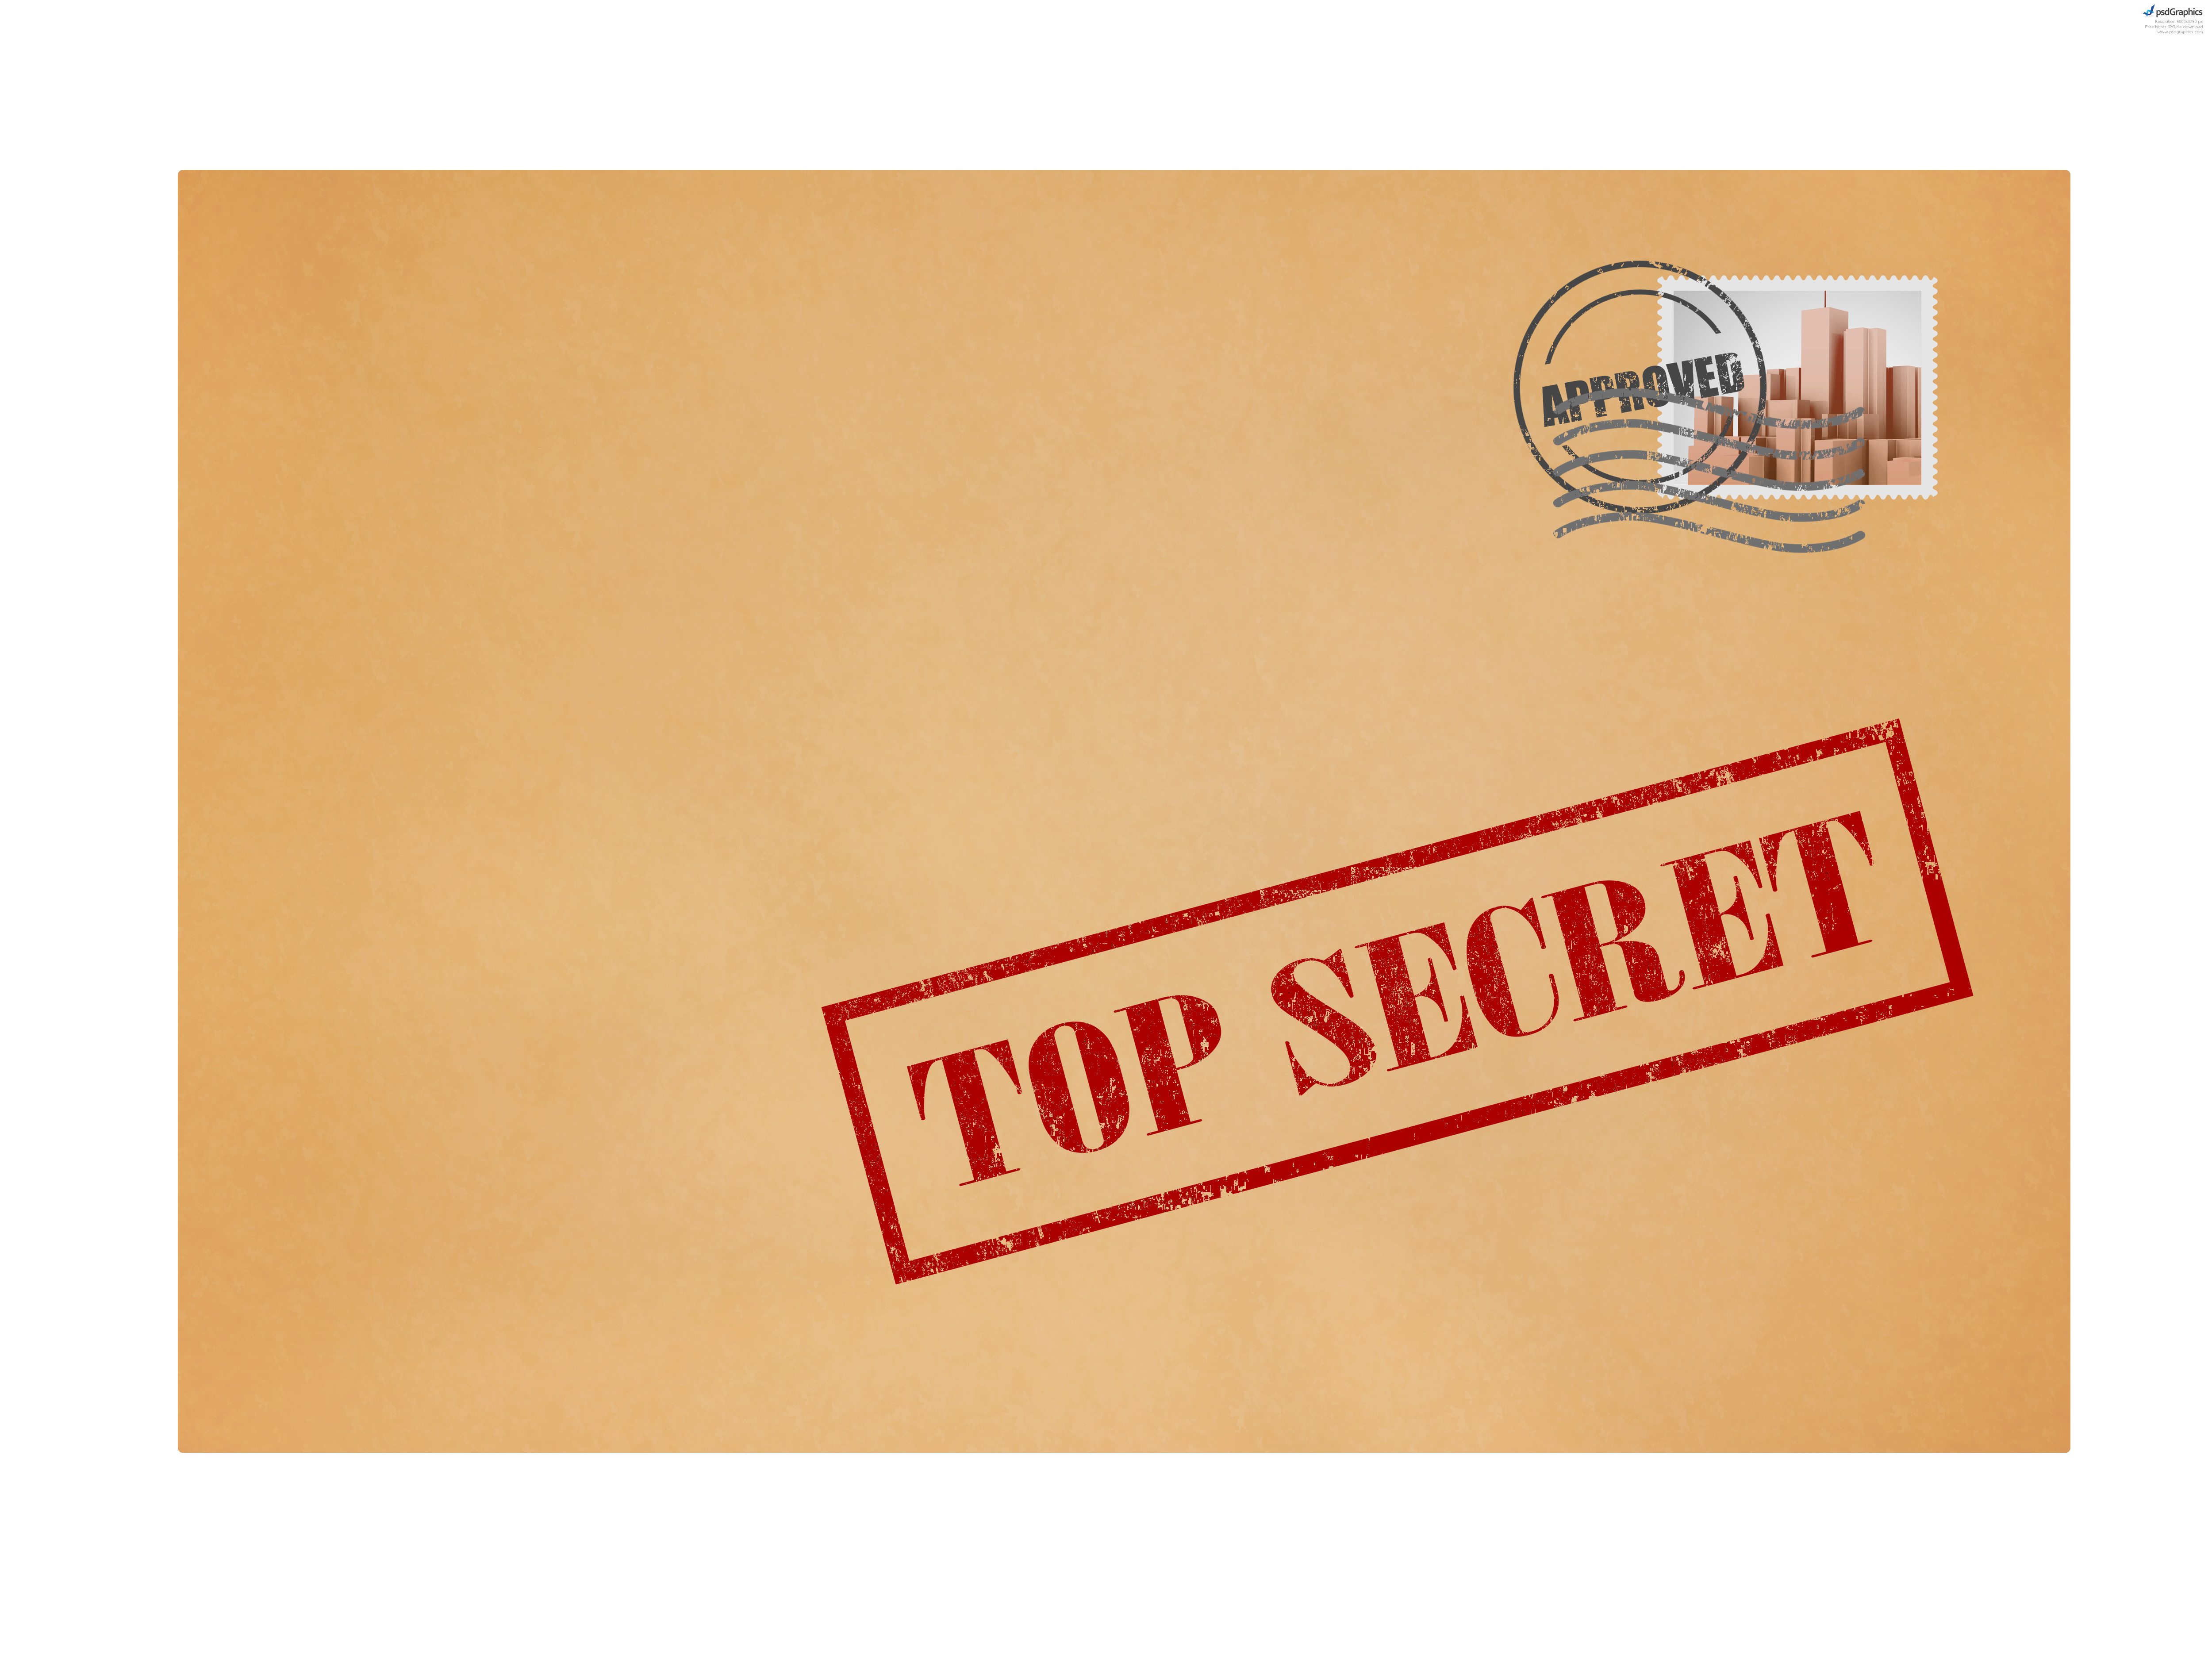 Top Secret Envelope Stamp